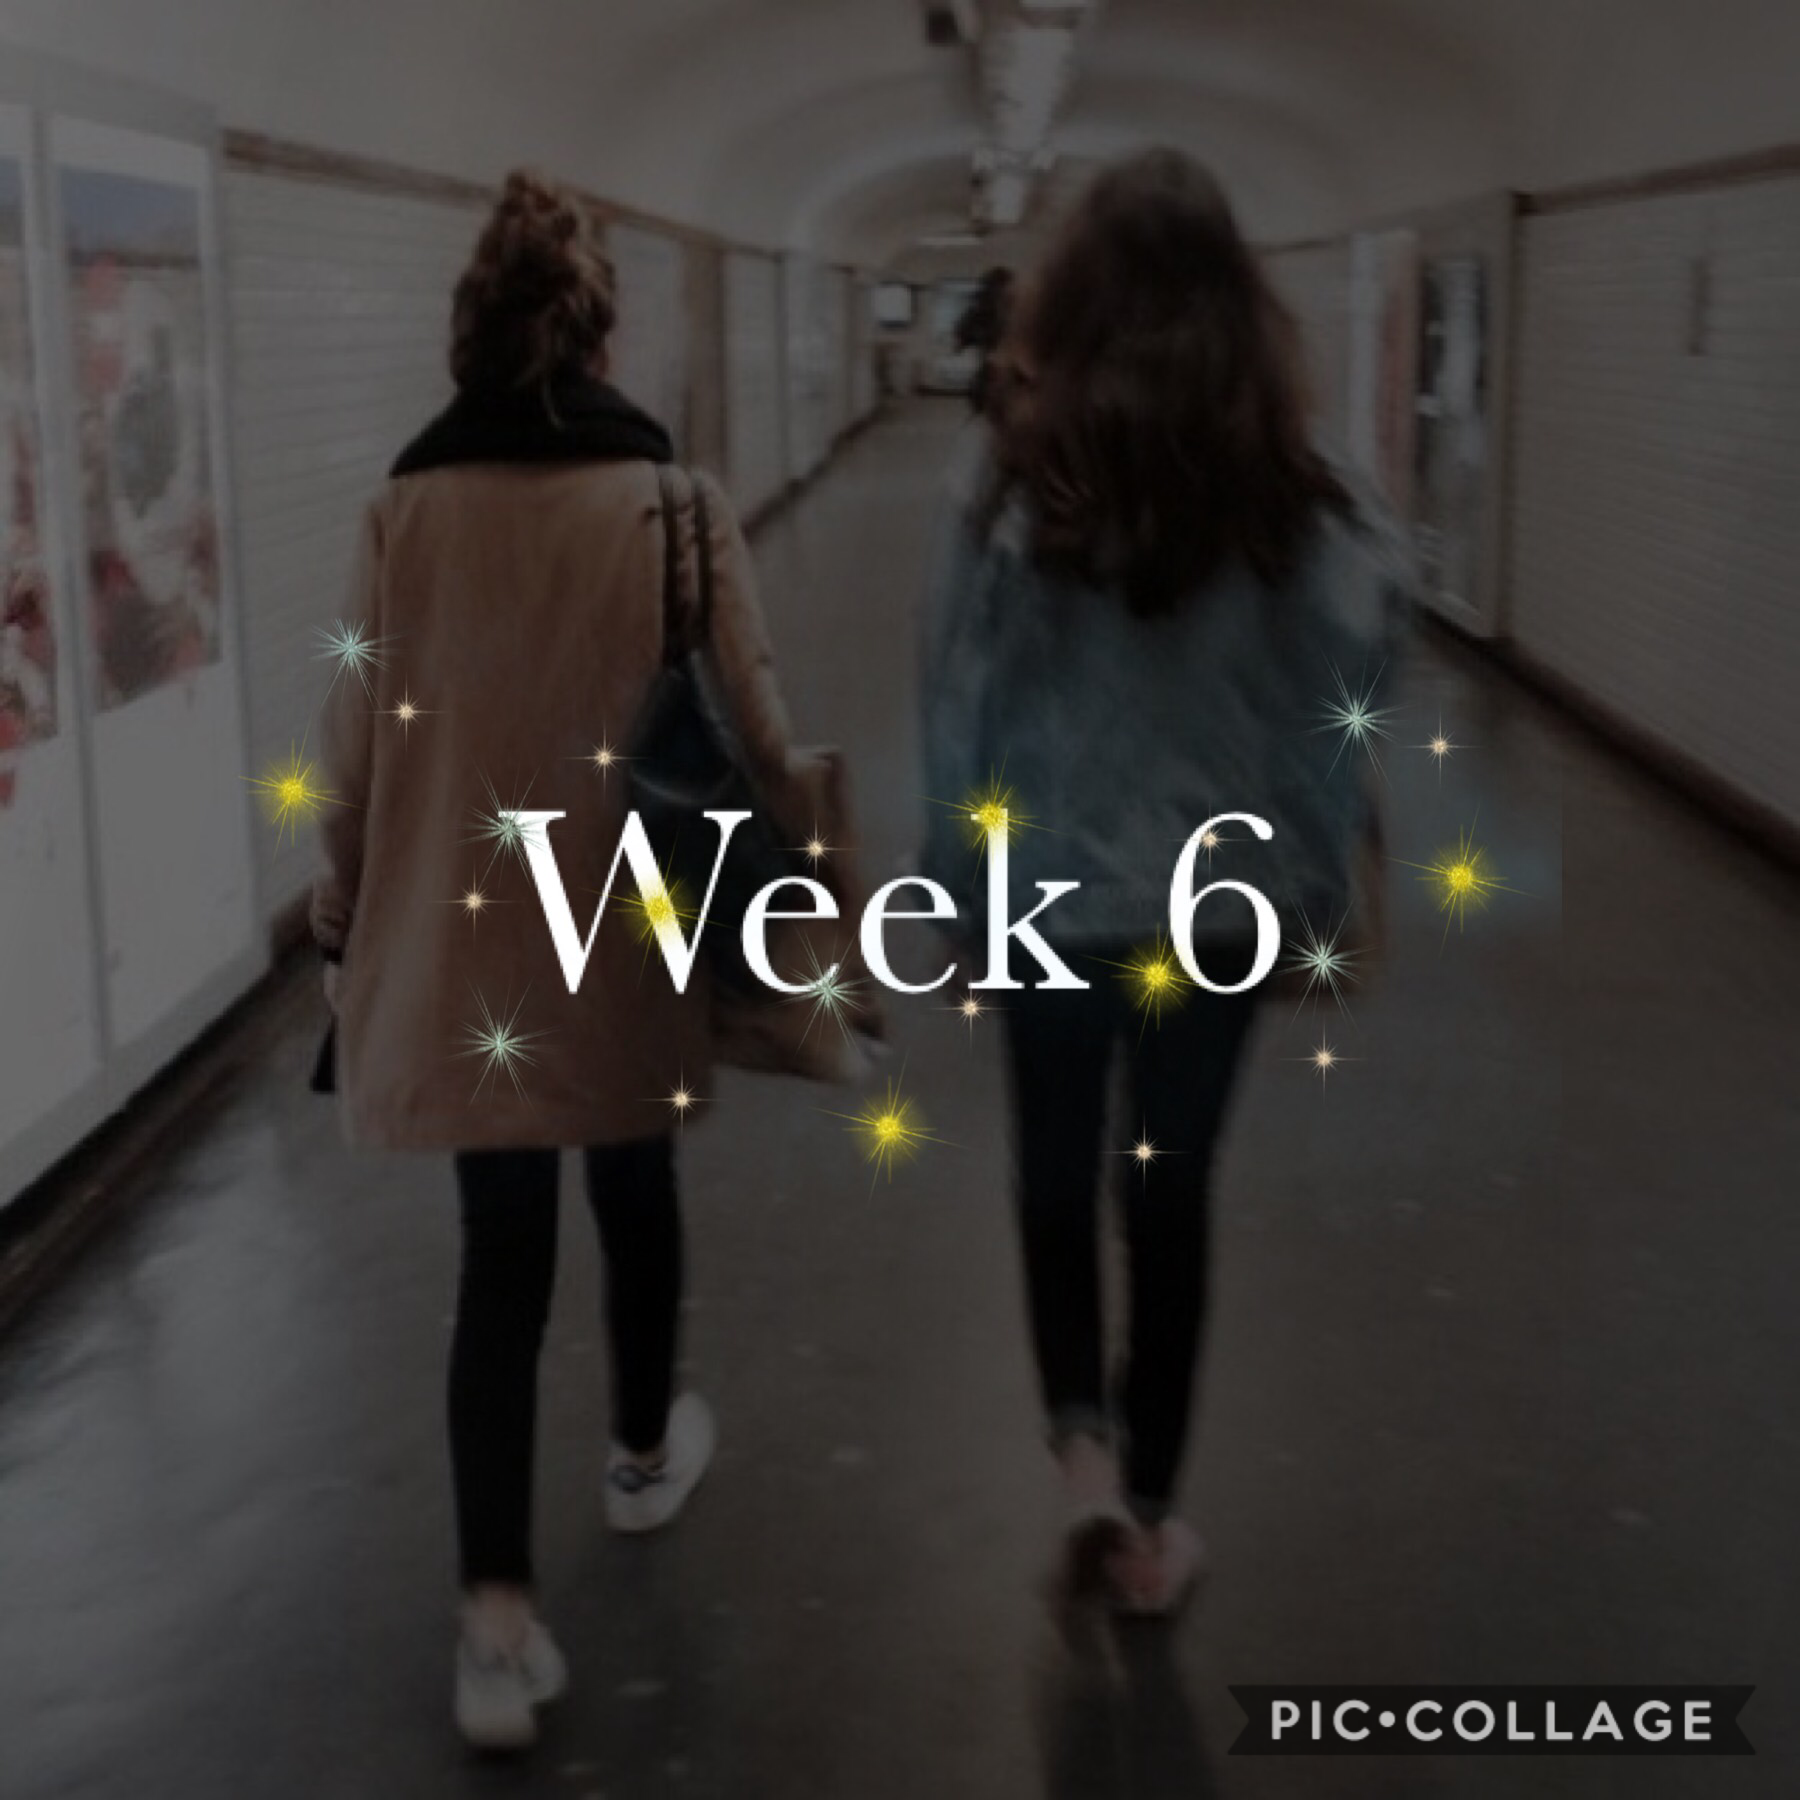 new week. if you are a teacher, remix a project on here or on the teacher thing. i have some activities planned. also it's time to join some clubs, JOIN THEM YO MAKE FRIENDS AND AFFECT HOW THE STORY GOES! - so join -